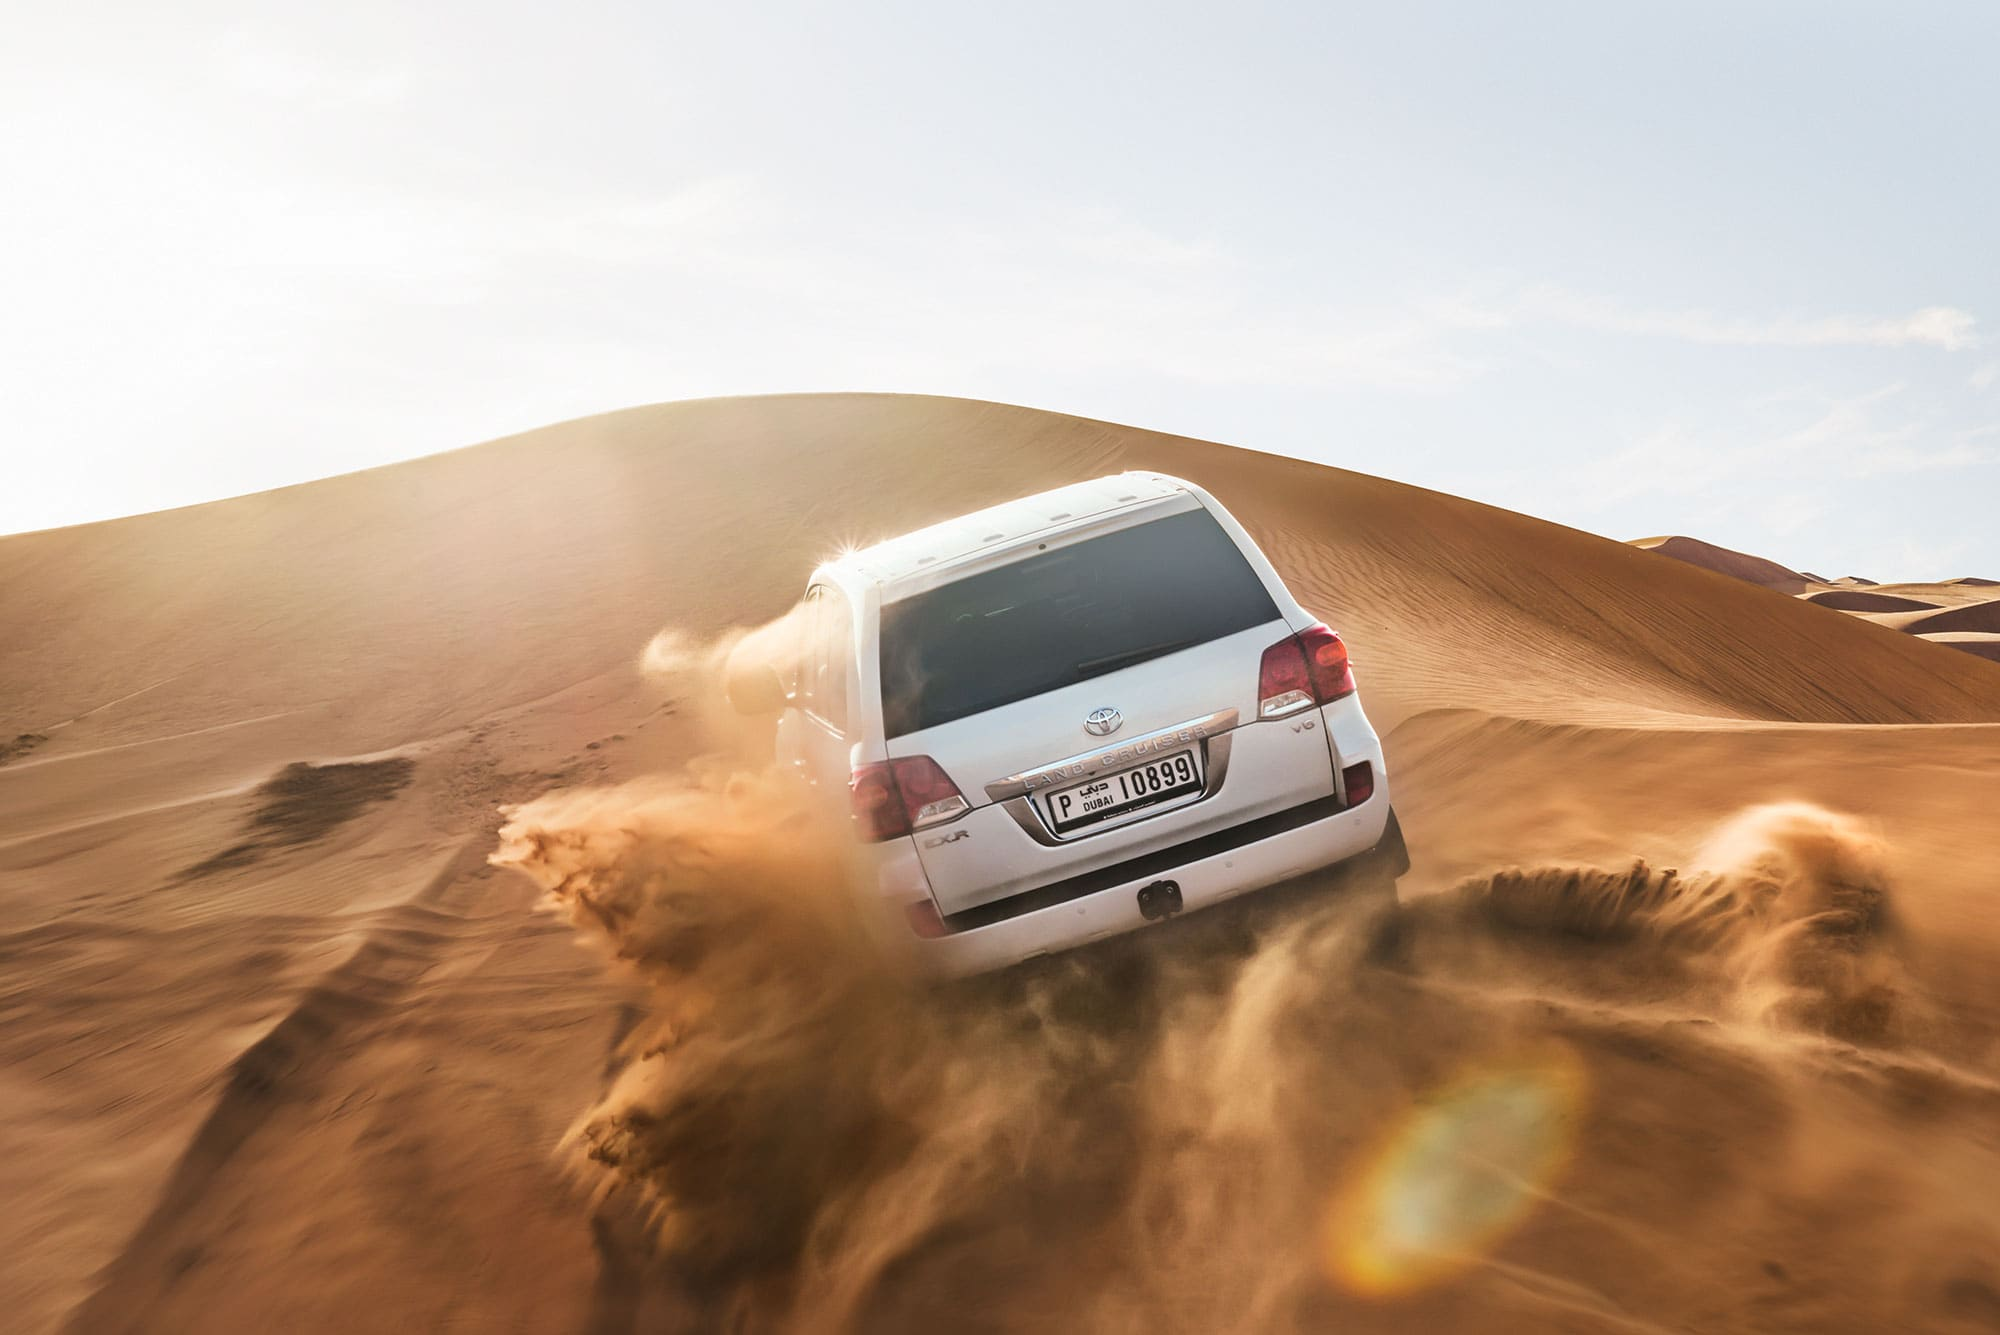 johannes kuehn photography and cgi berlin Dubai with Toyota